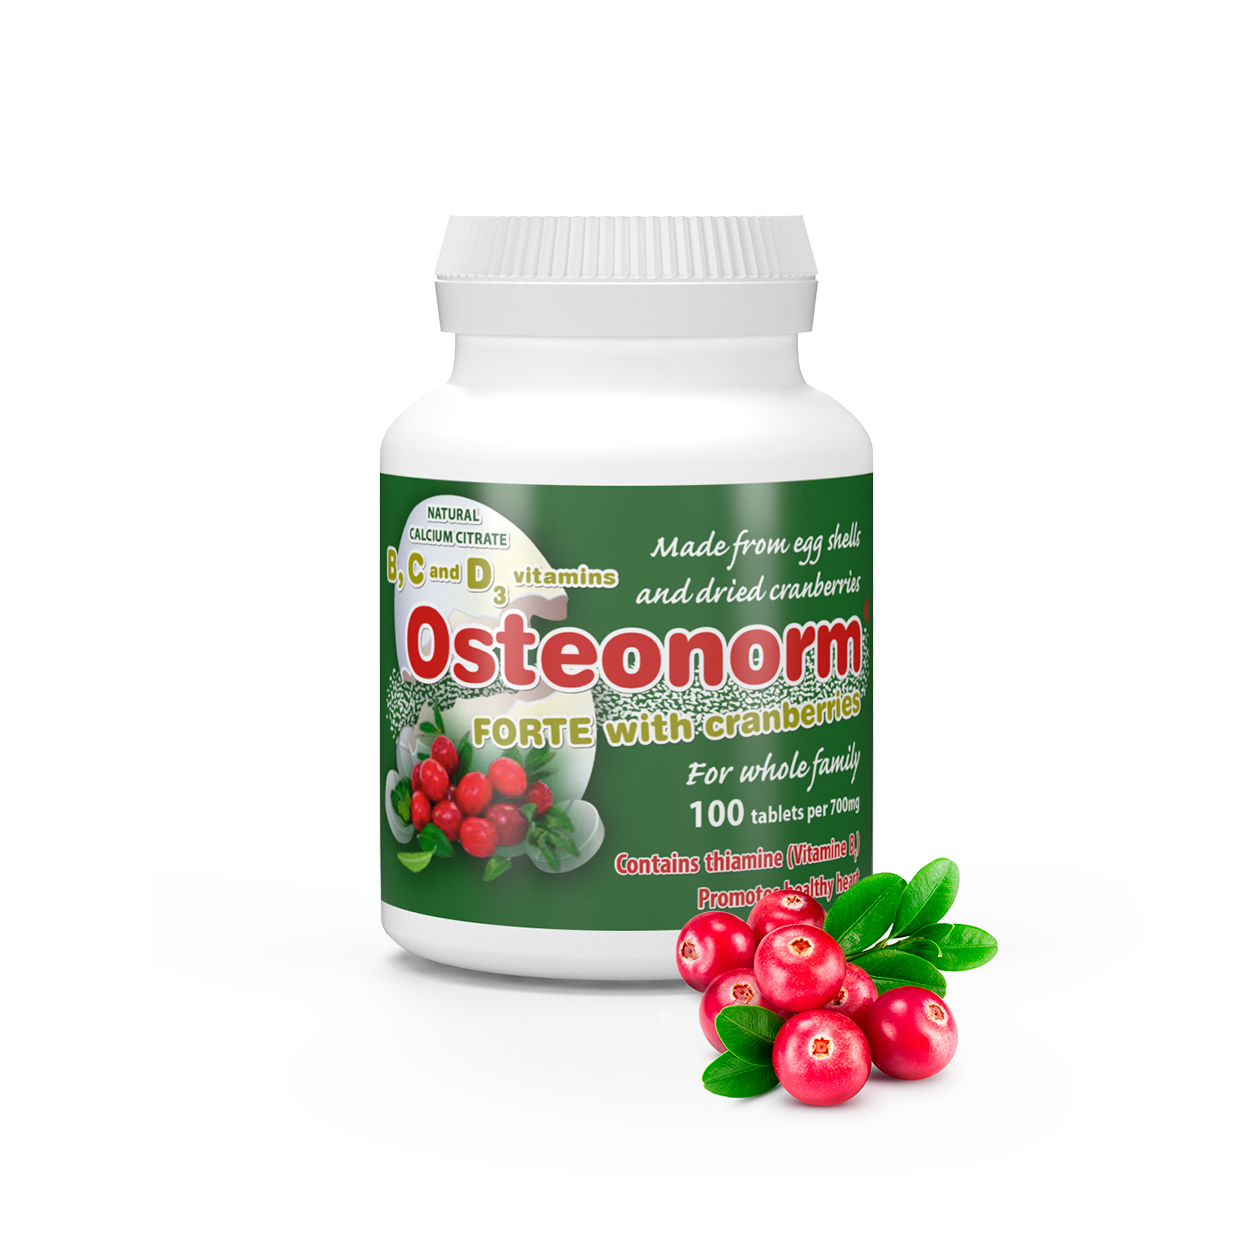 Osteonorm_Cranberries_02 Osteonorm FORTE with Cranberries 100 tablets per 700mg